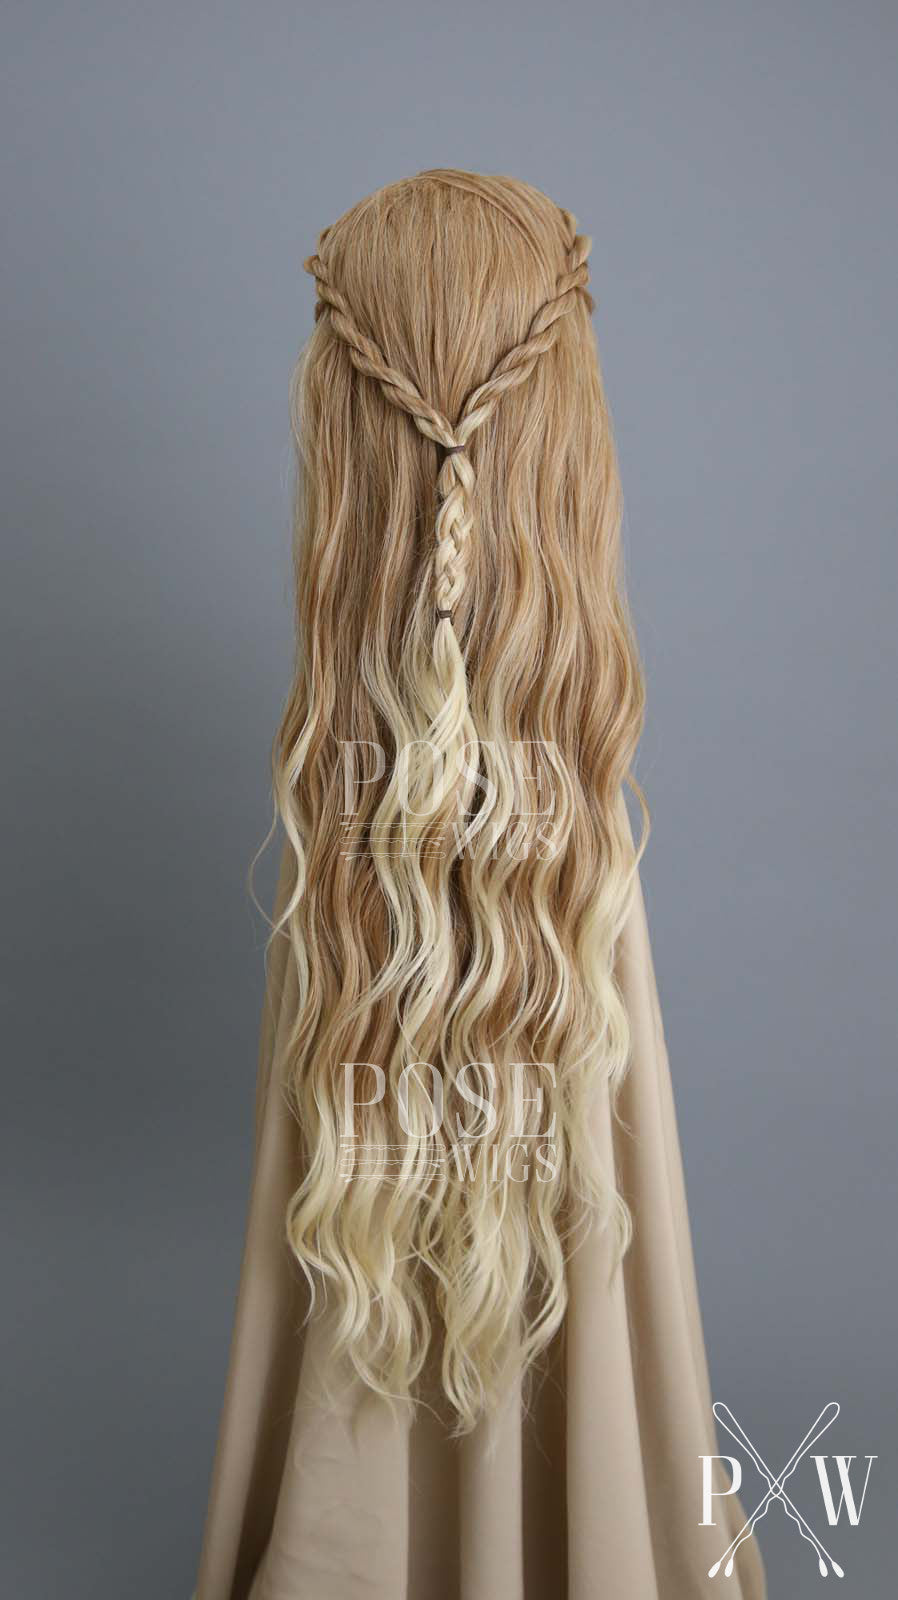 Strawberry Blonde Ombre Custom Braided Long Curly Lace Front Wig - Lady Series